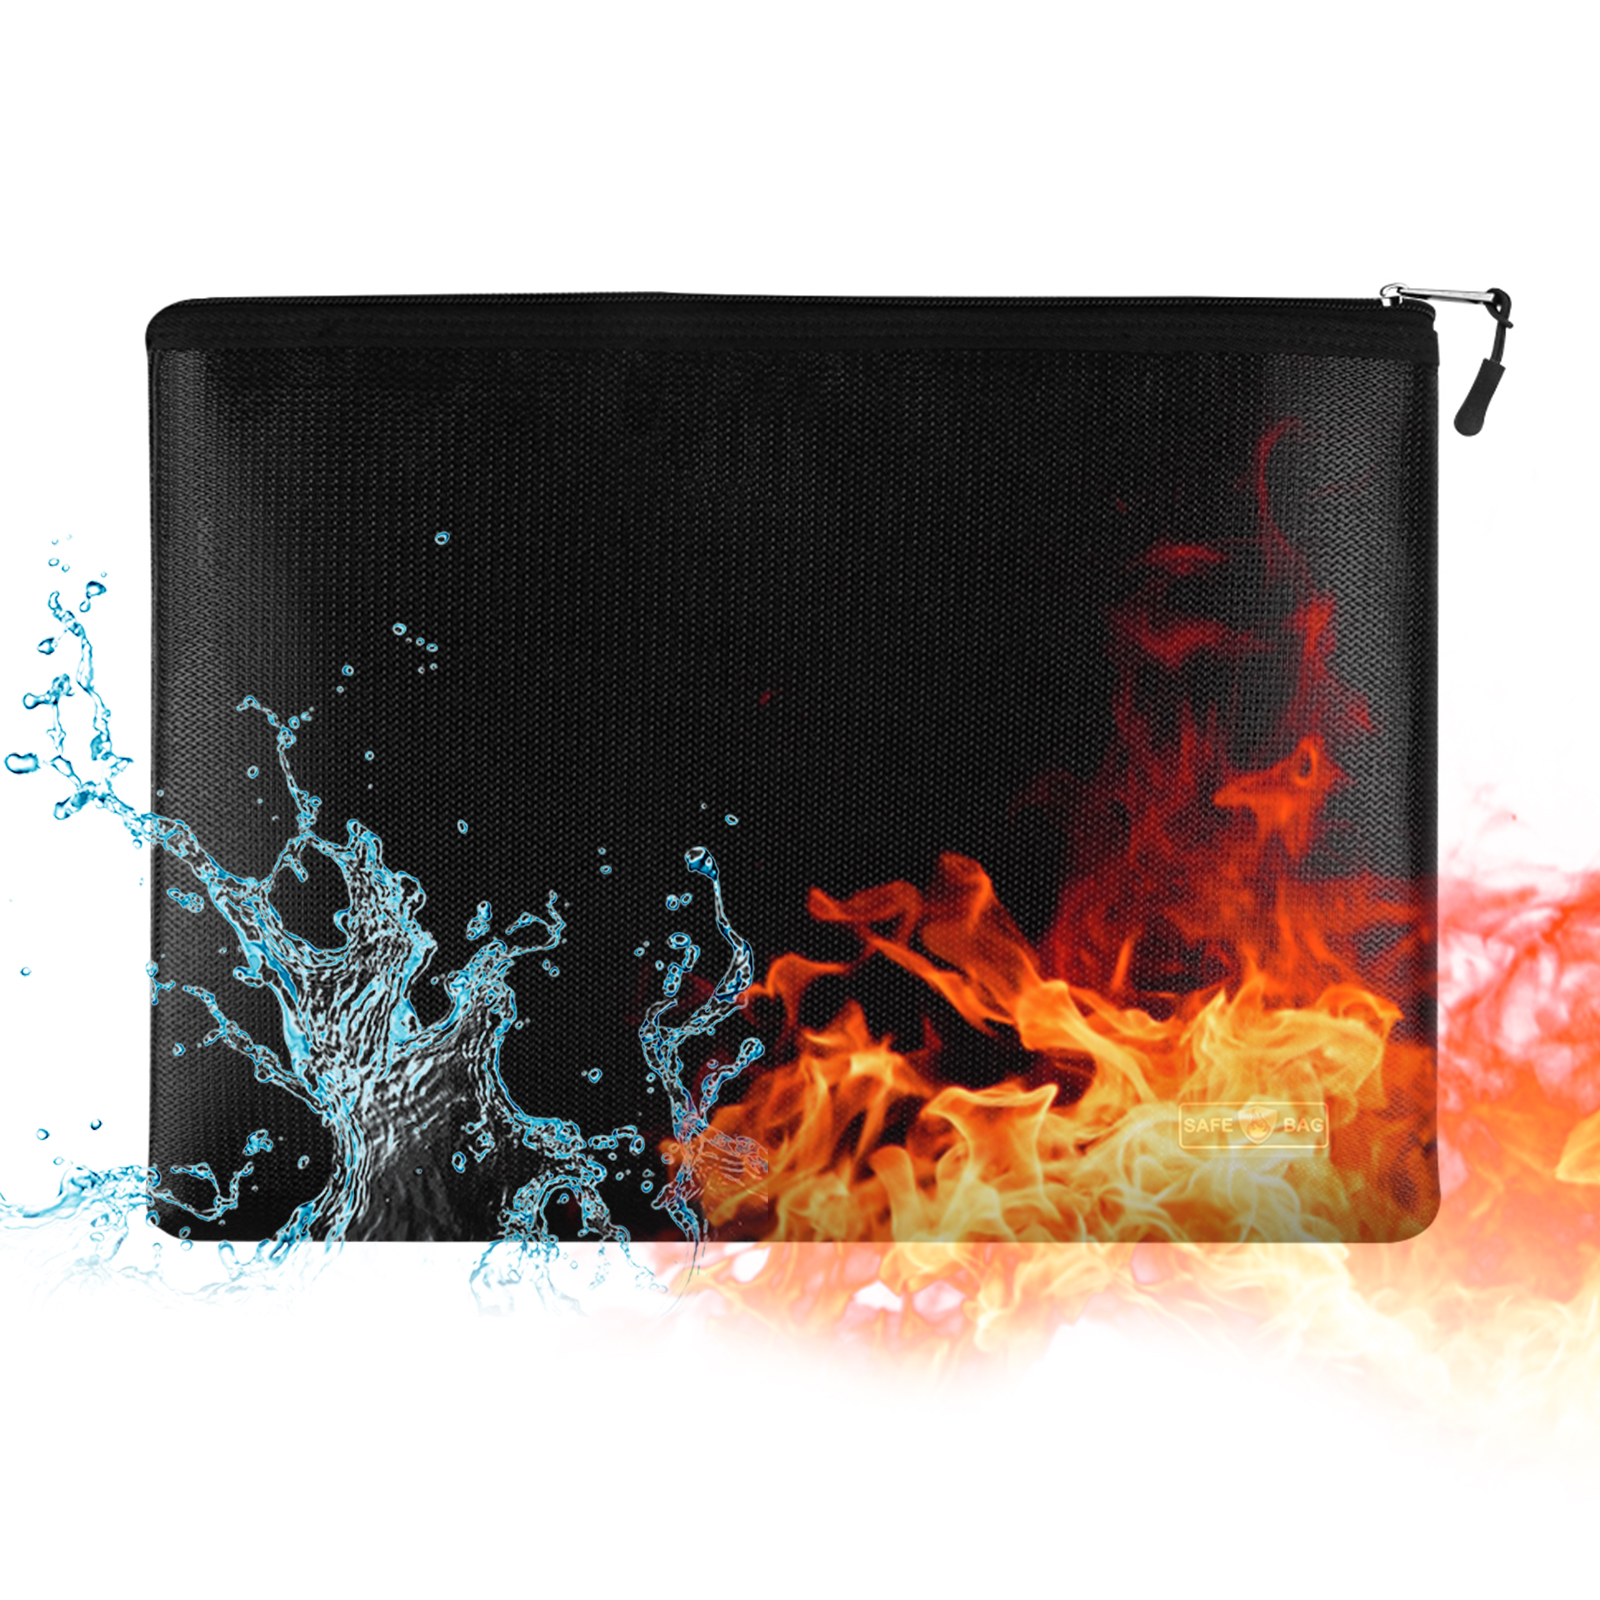 Fireproof Document Bag Fireproof and Waterproof File Folder Money Bag Safe Storage Pouch Holder Organizer with Zipper Closure